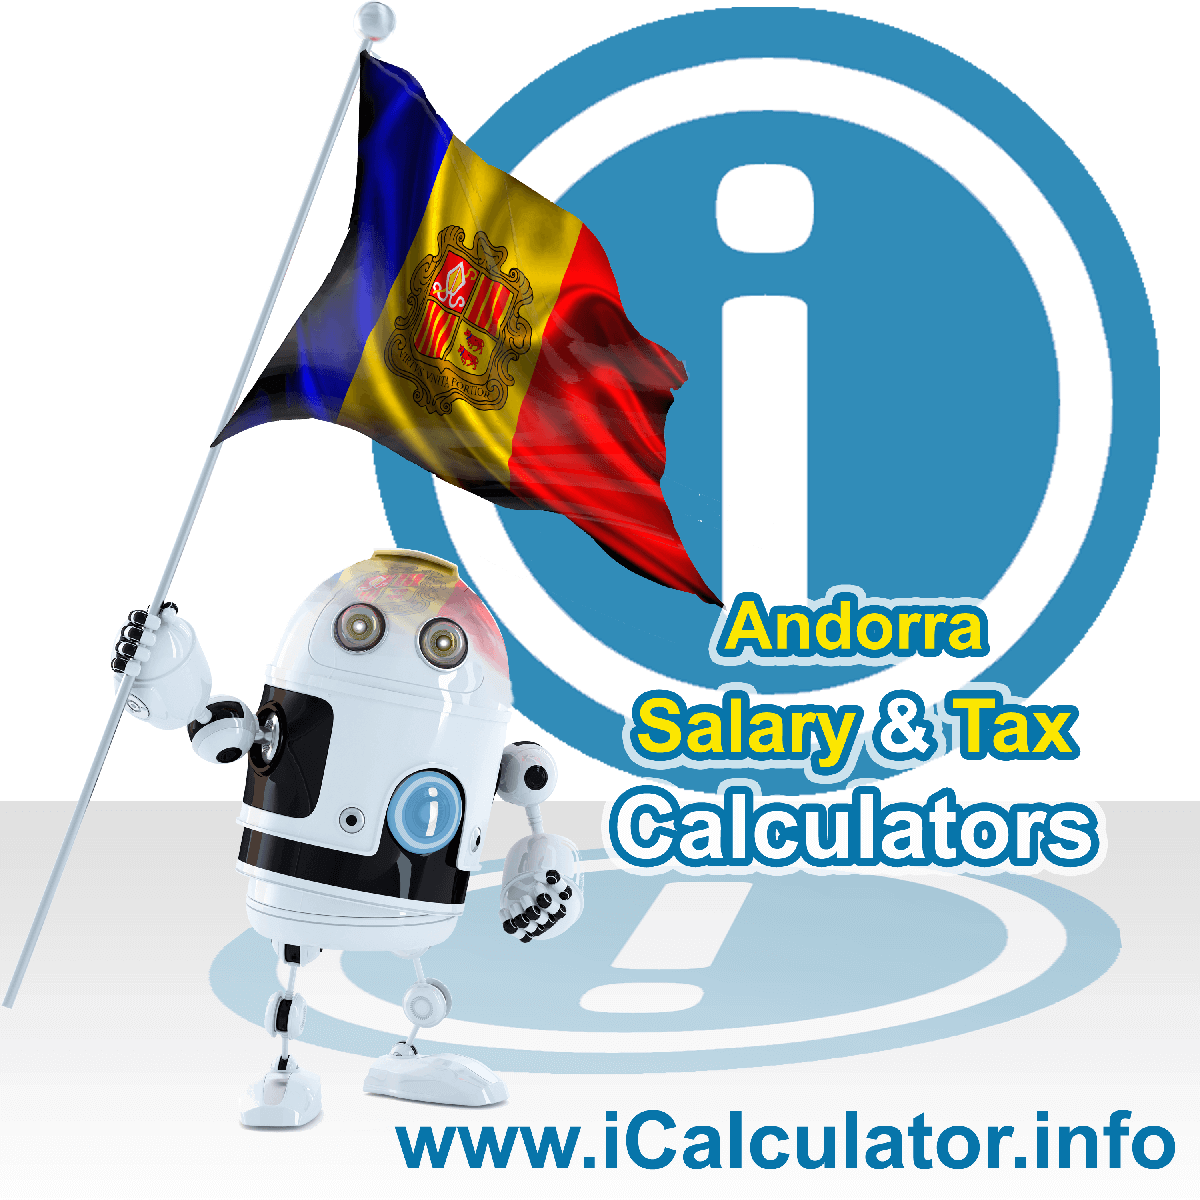 Andorra Wage Calculator. This image shows the Andorra flag and information relating to the tax formula for the Andorra Tax Calculator